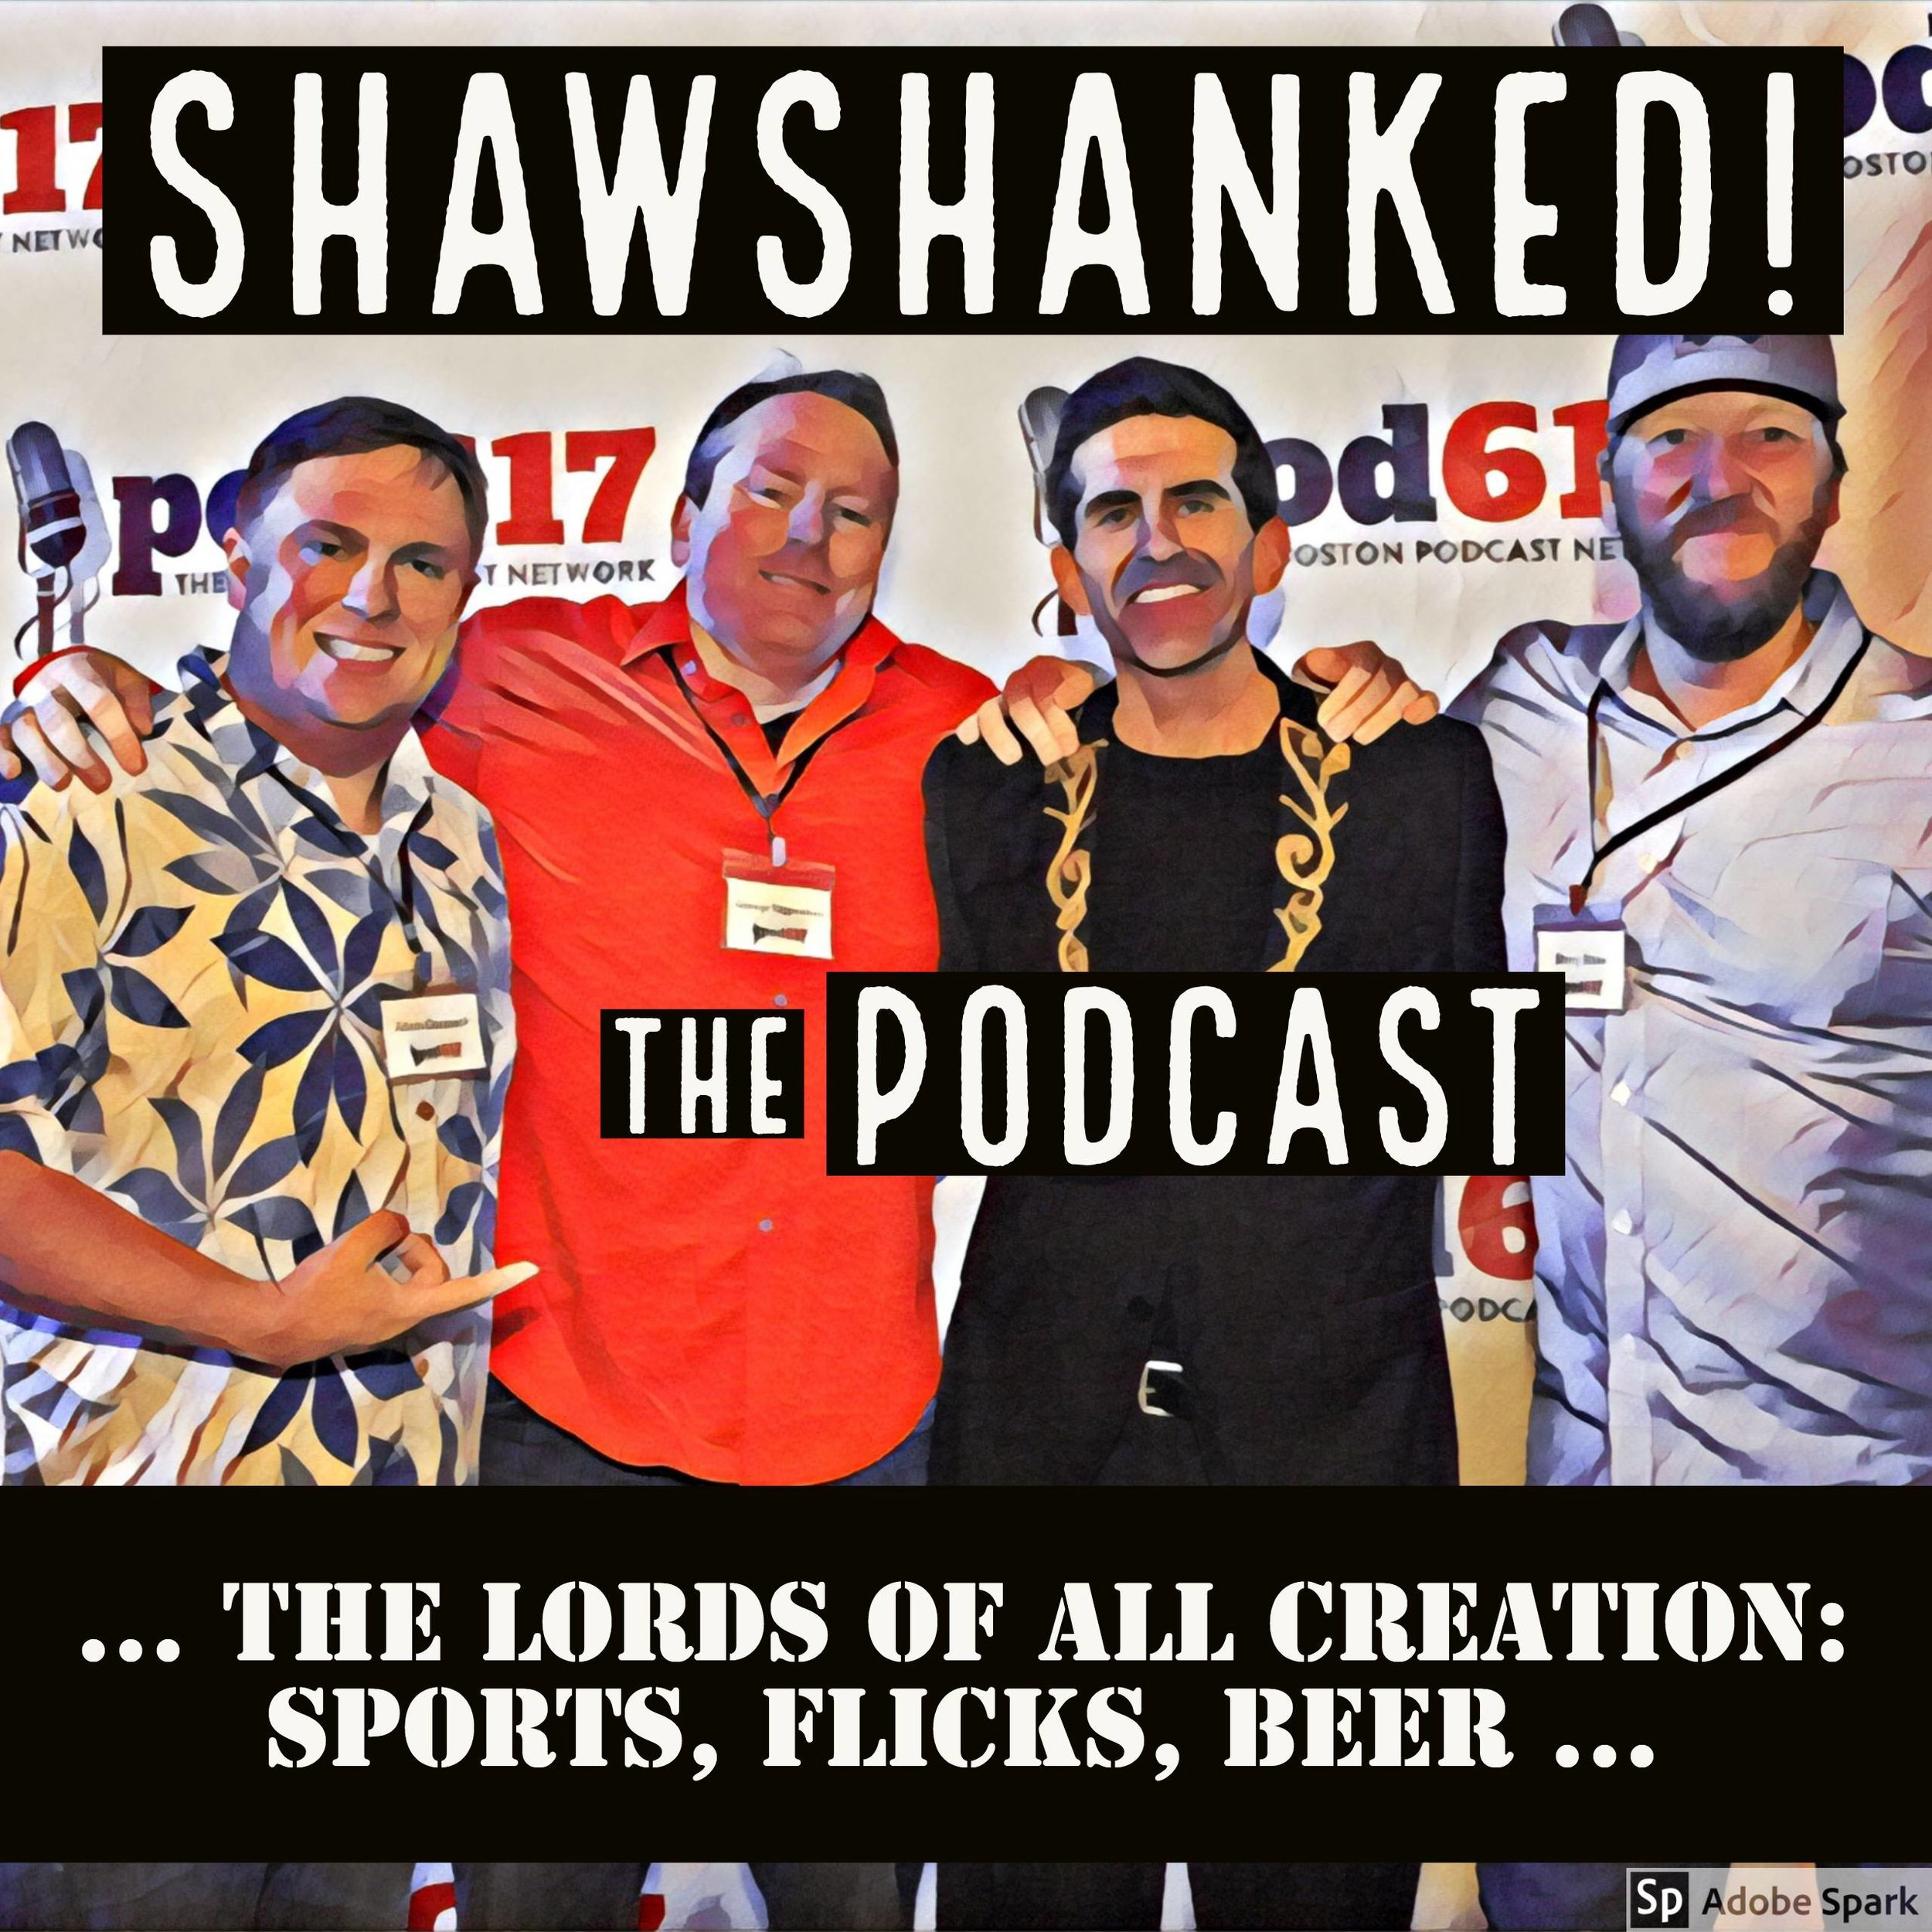 shawshanked-logo-new.jpg